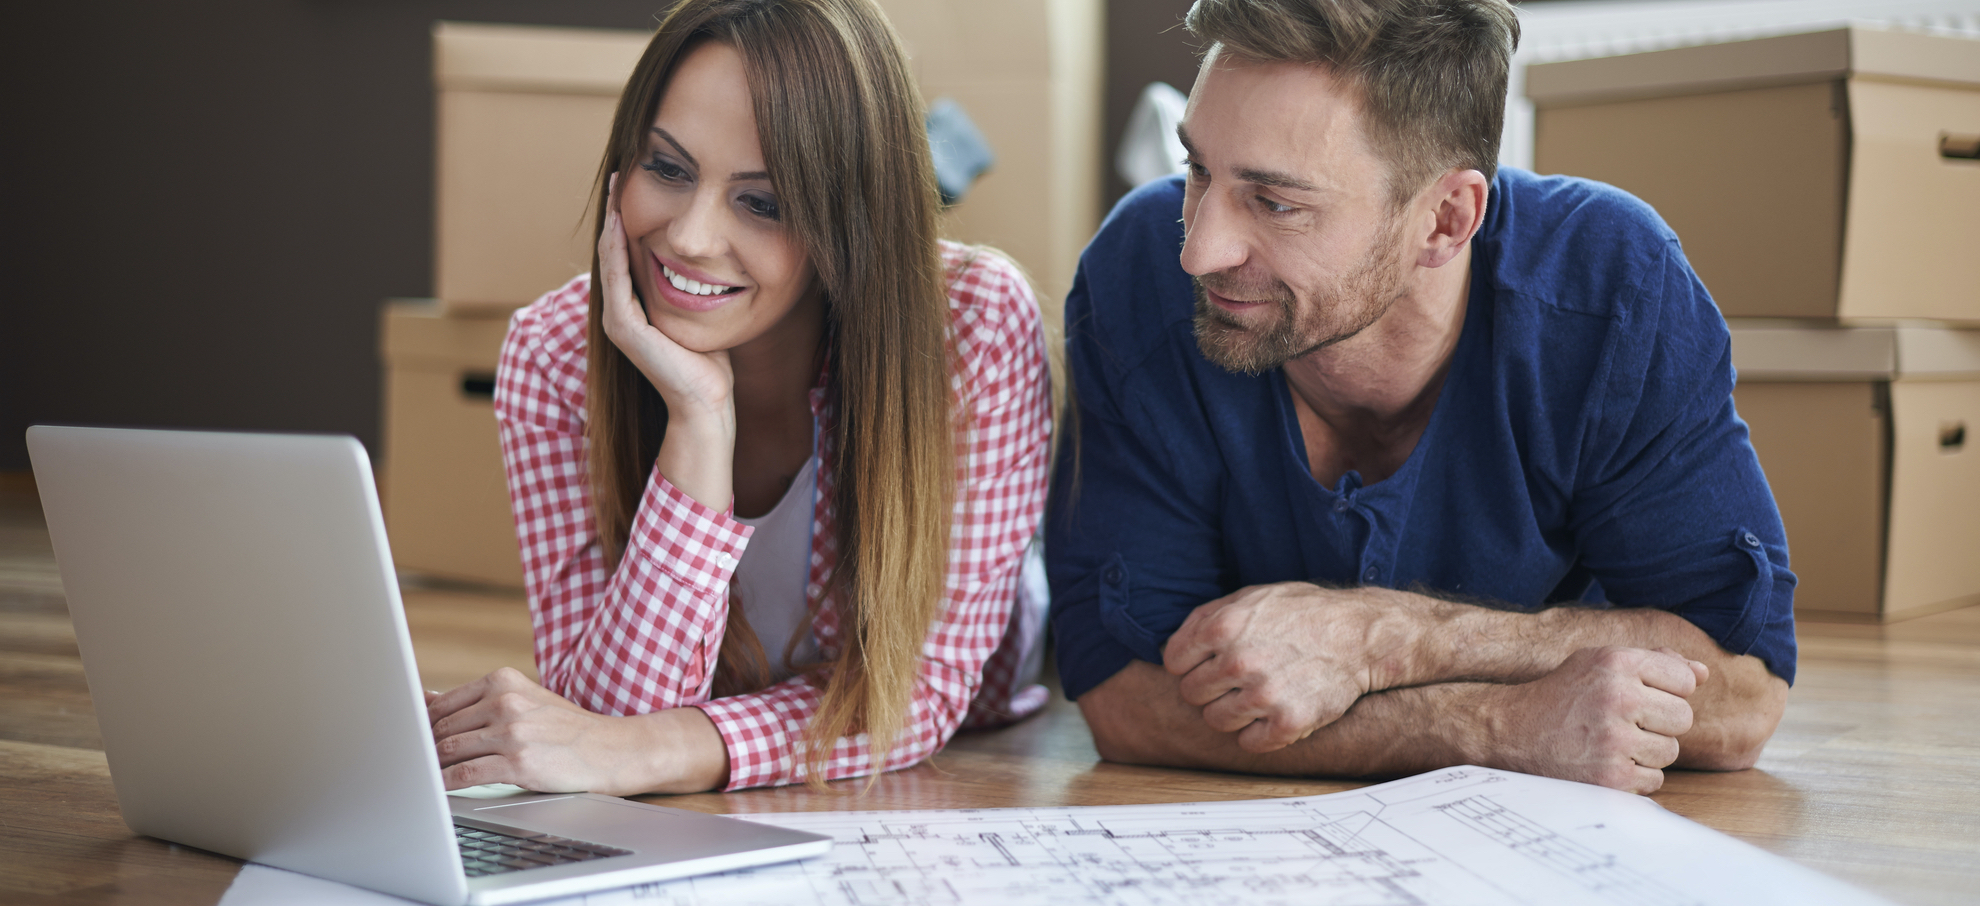 A young couple renovating their first home looks at blueprint and computer to find a local electrician.